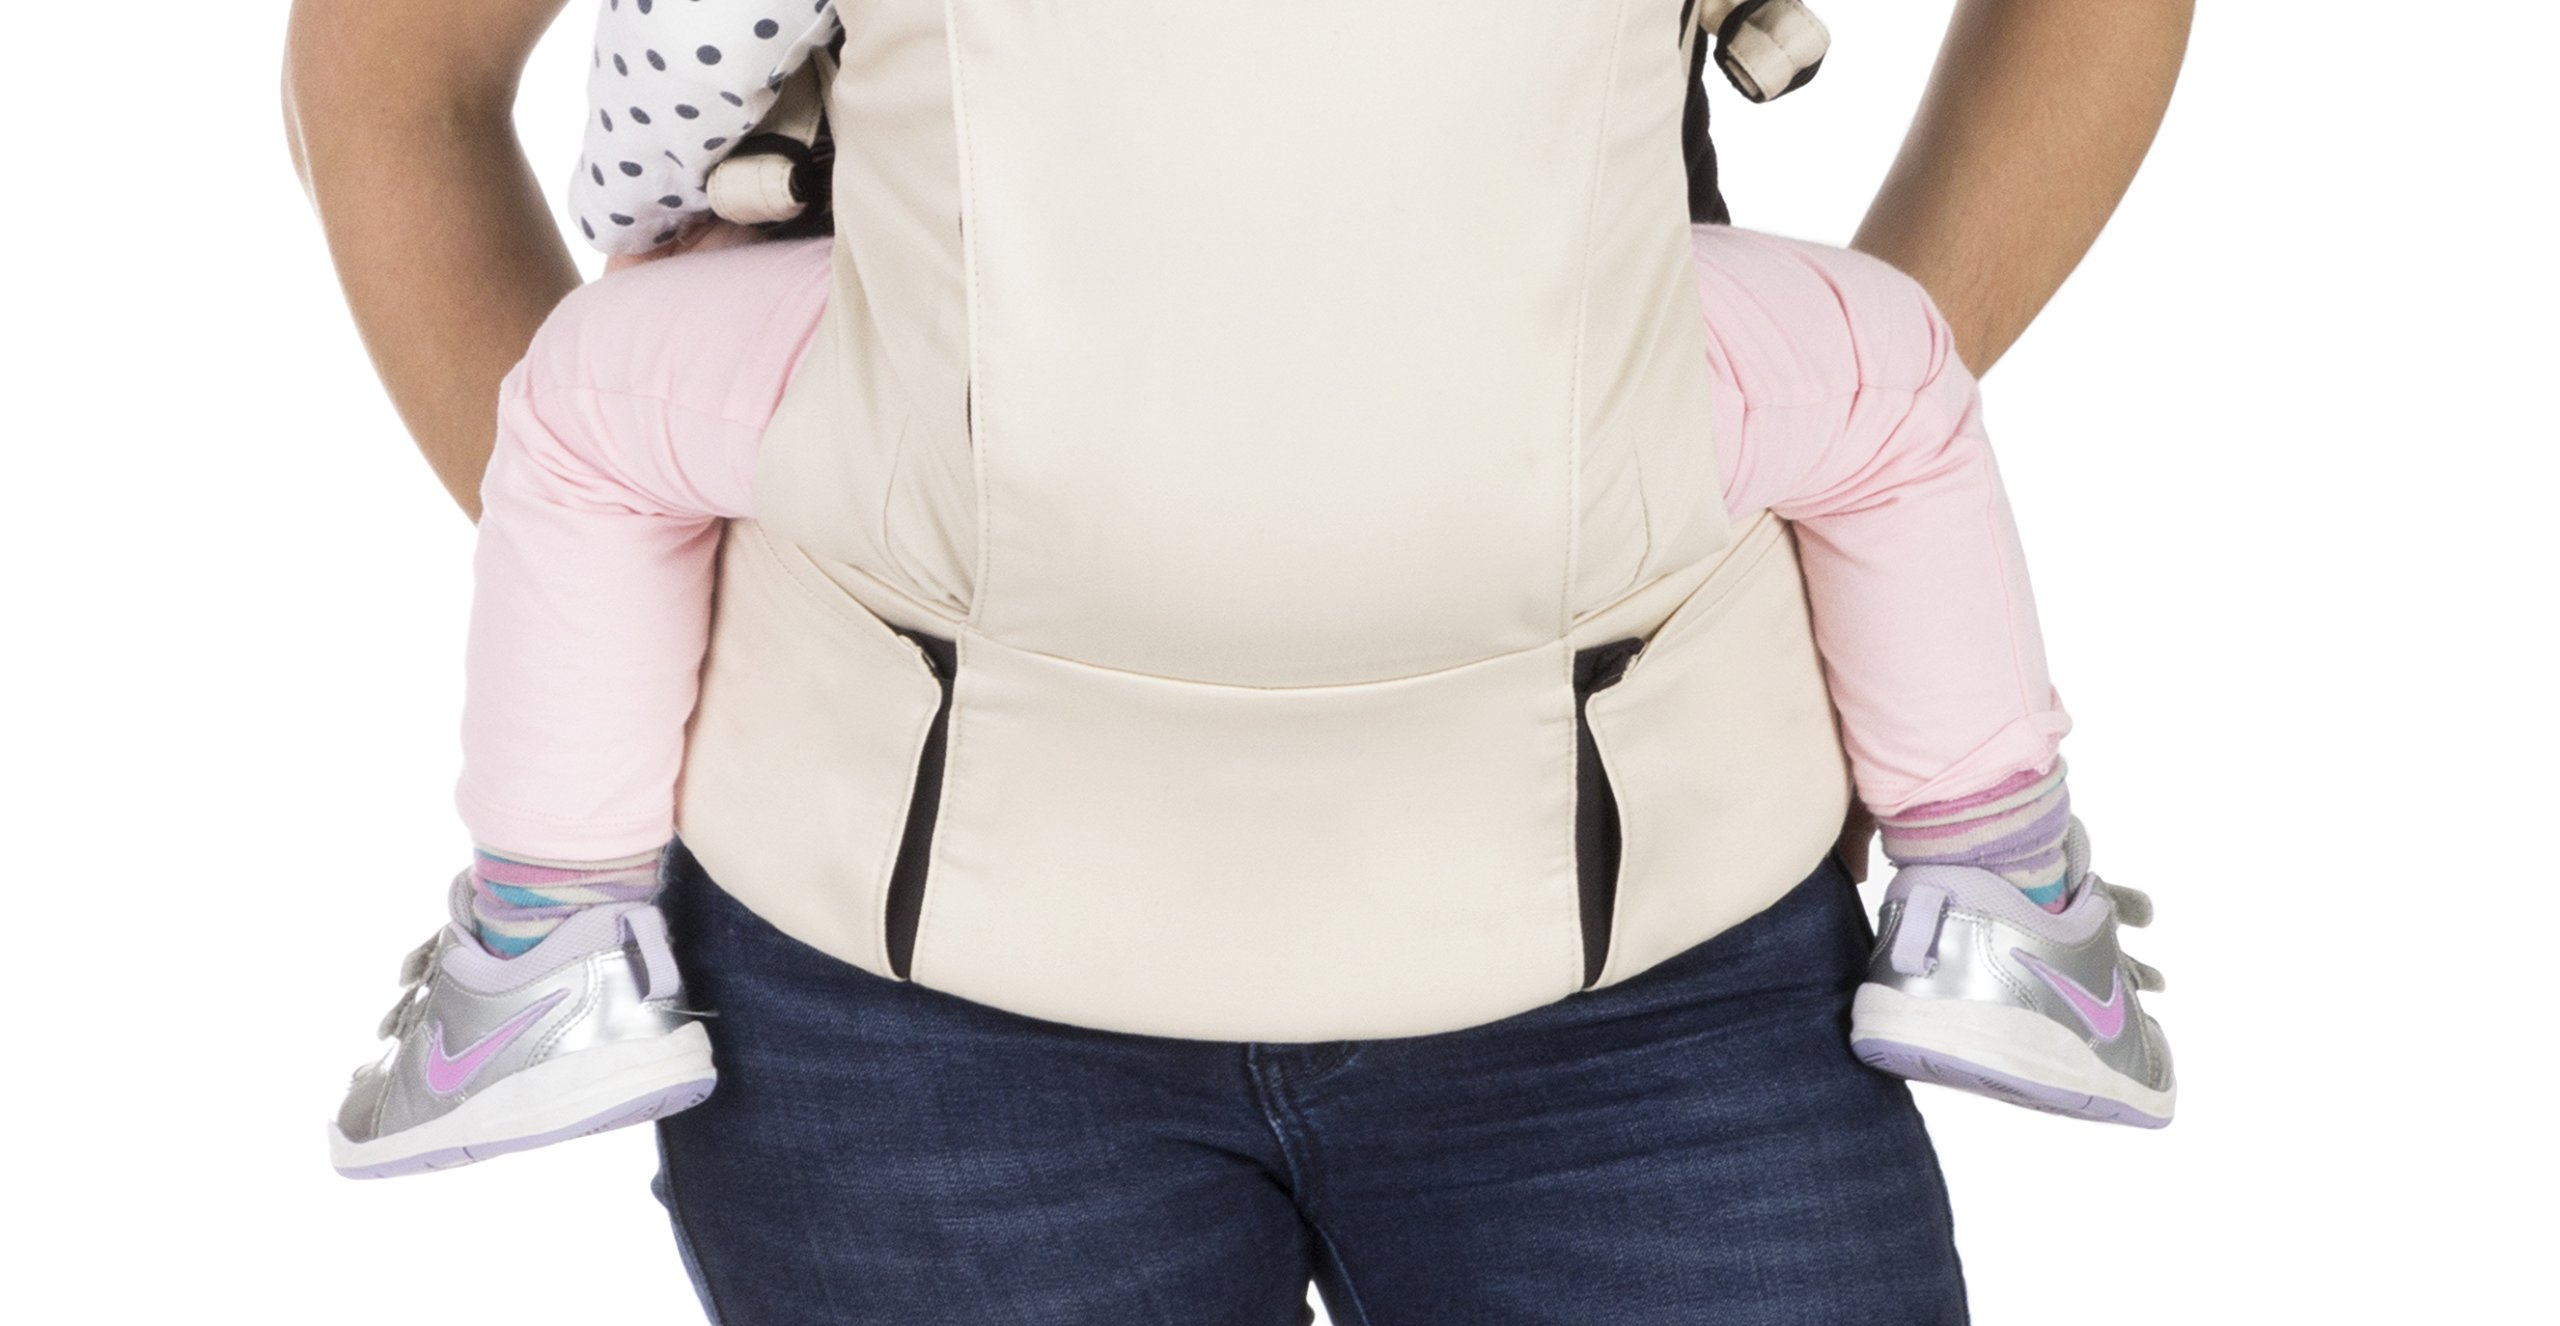 Mountain Buggy Juno Carrier - Sand Mountain Buggy Mountain Buggy Juno Carrier Multi functional carrier that transitions seamlessly from newborn to toddler Providing hands free: hands through connection; juno has been designed to deliver the very best ergonomics in all carrying modes: for both you and your child. 10